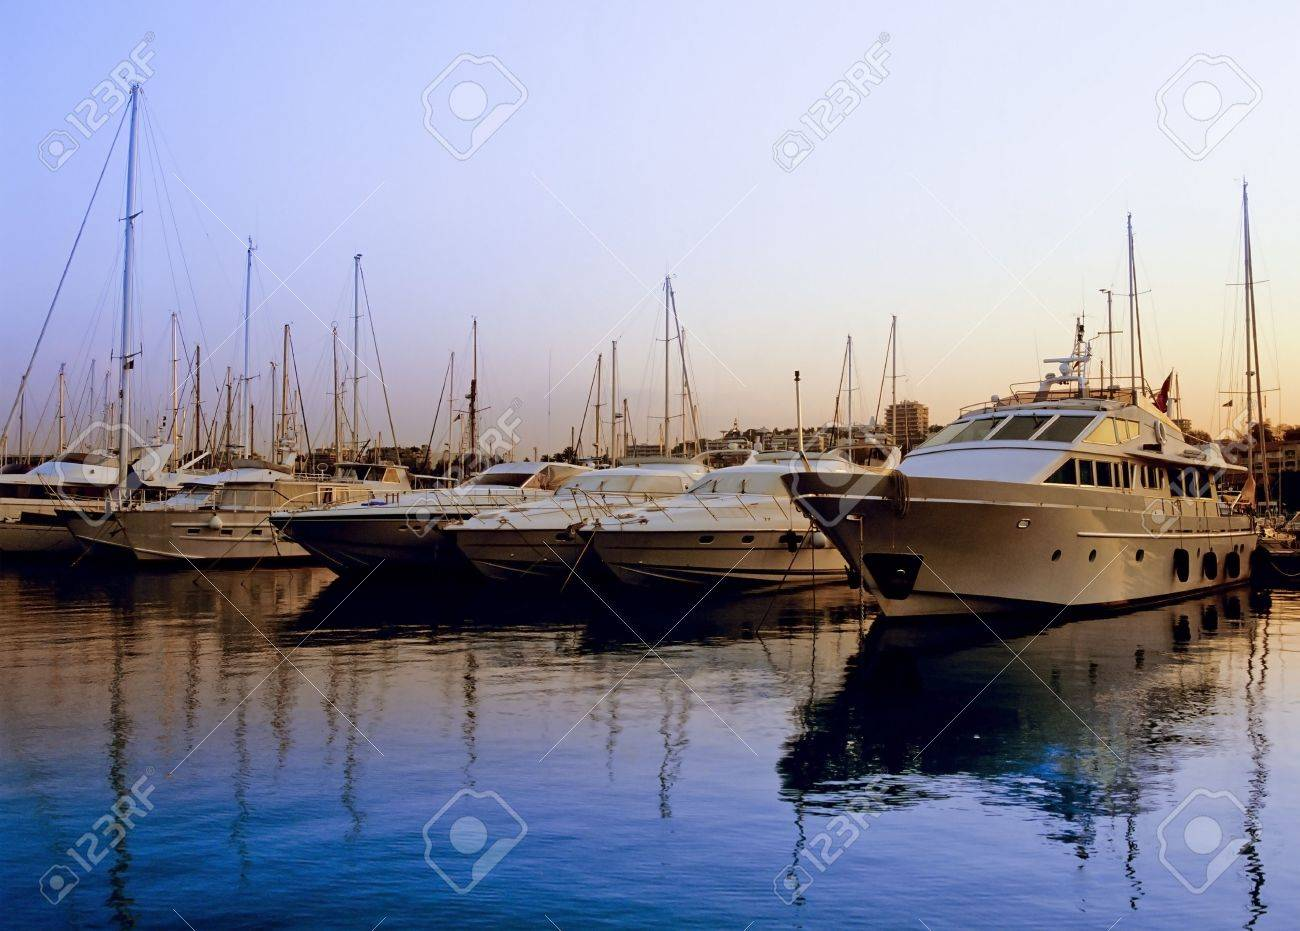 harbour antibes alpes maritime cote d'azur french riviera provence south of france europe Stock Photo - 1357073